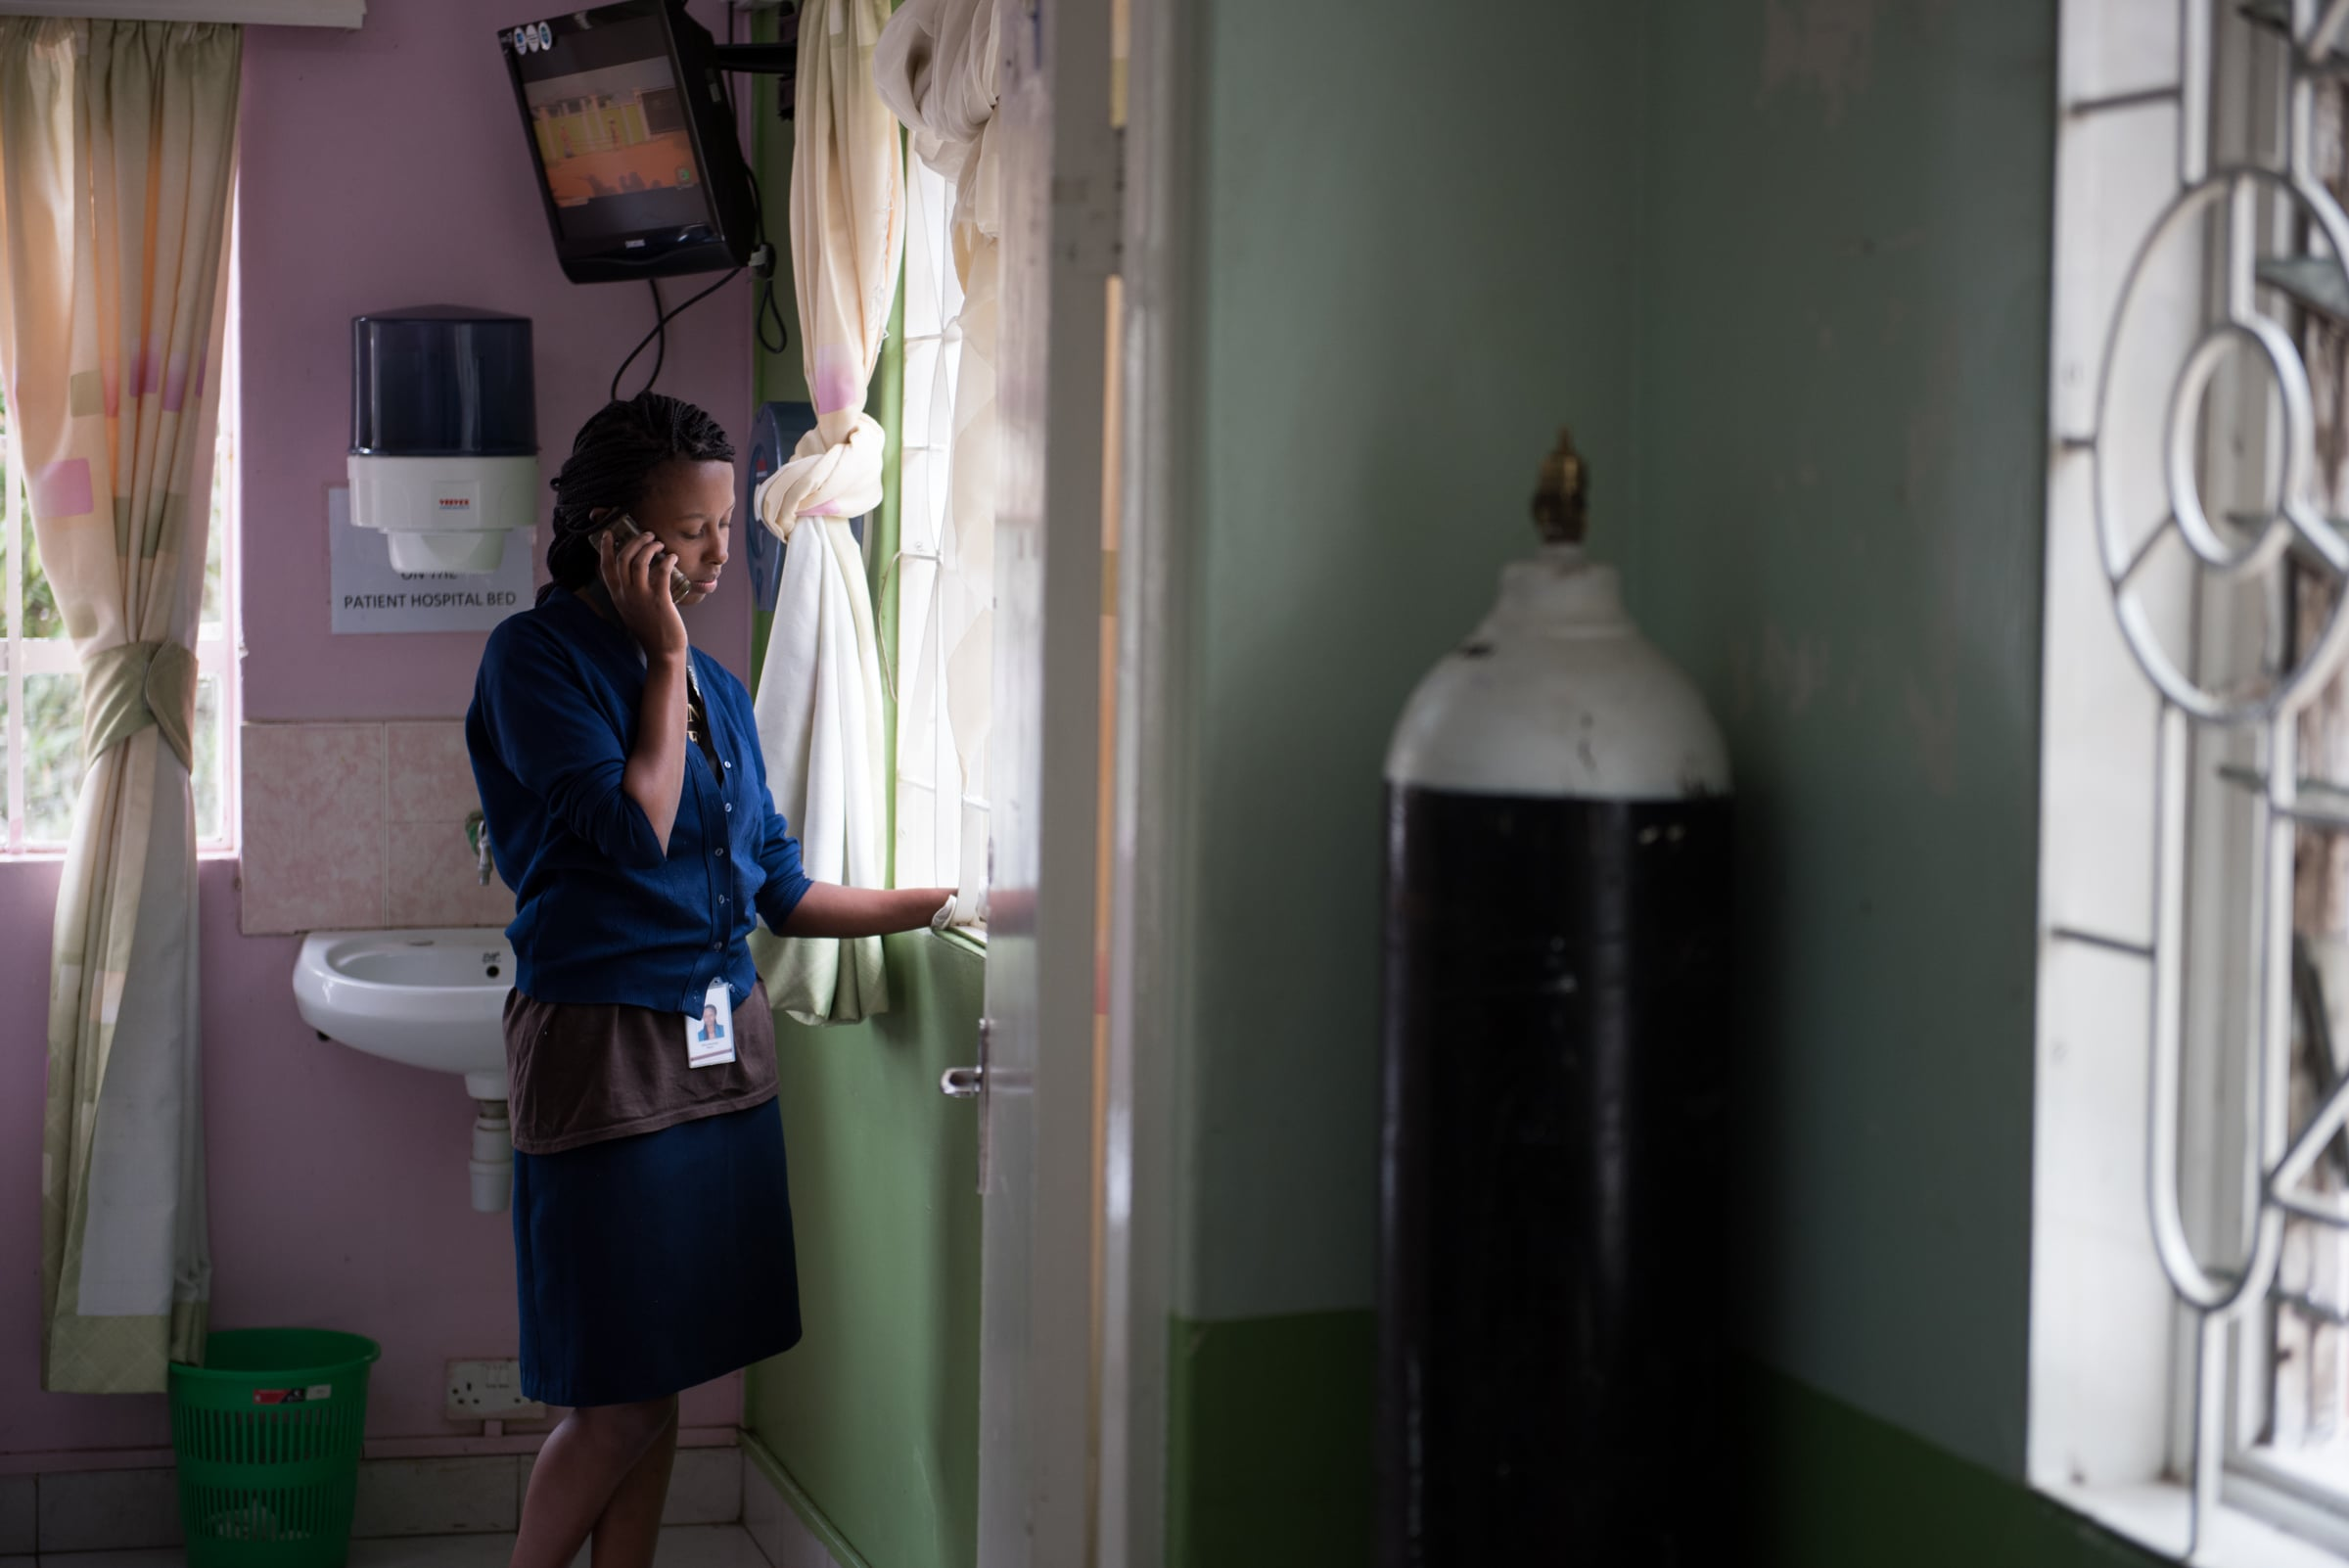 Nurse Milca Mwankiki talks on the phone with a friend during a break in her shift. For nurses like Milca who confront death regularly, connecting with friends and colleagues is an essential part of managing the stress of working in palliative care.